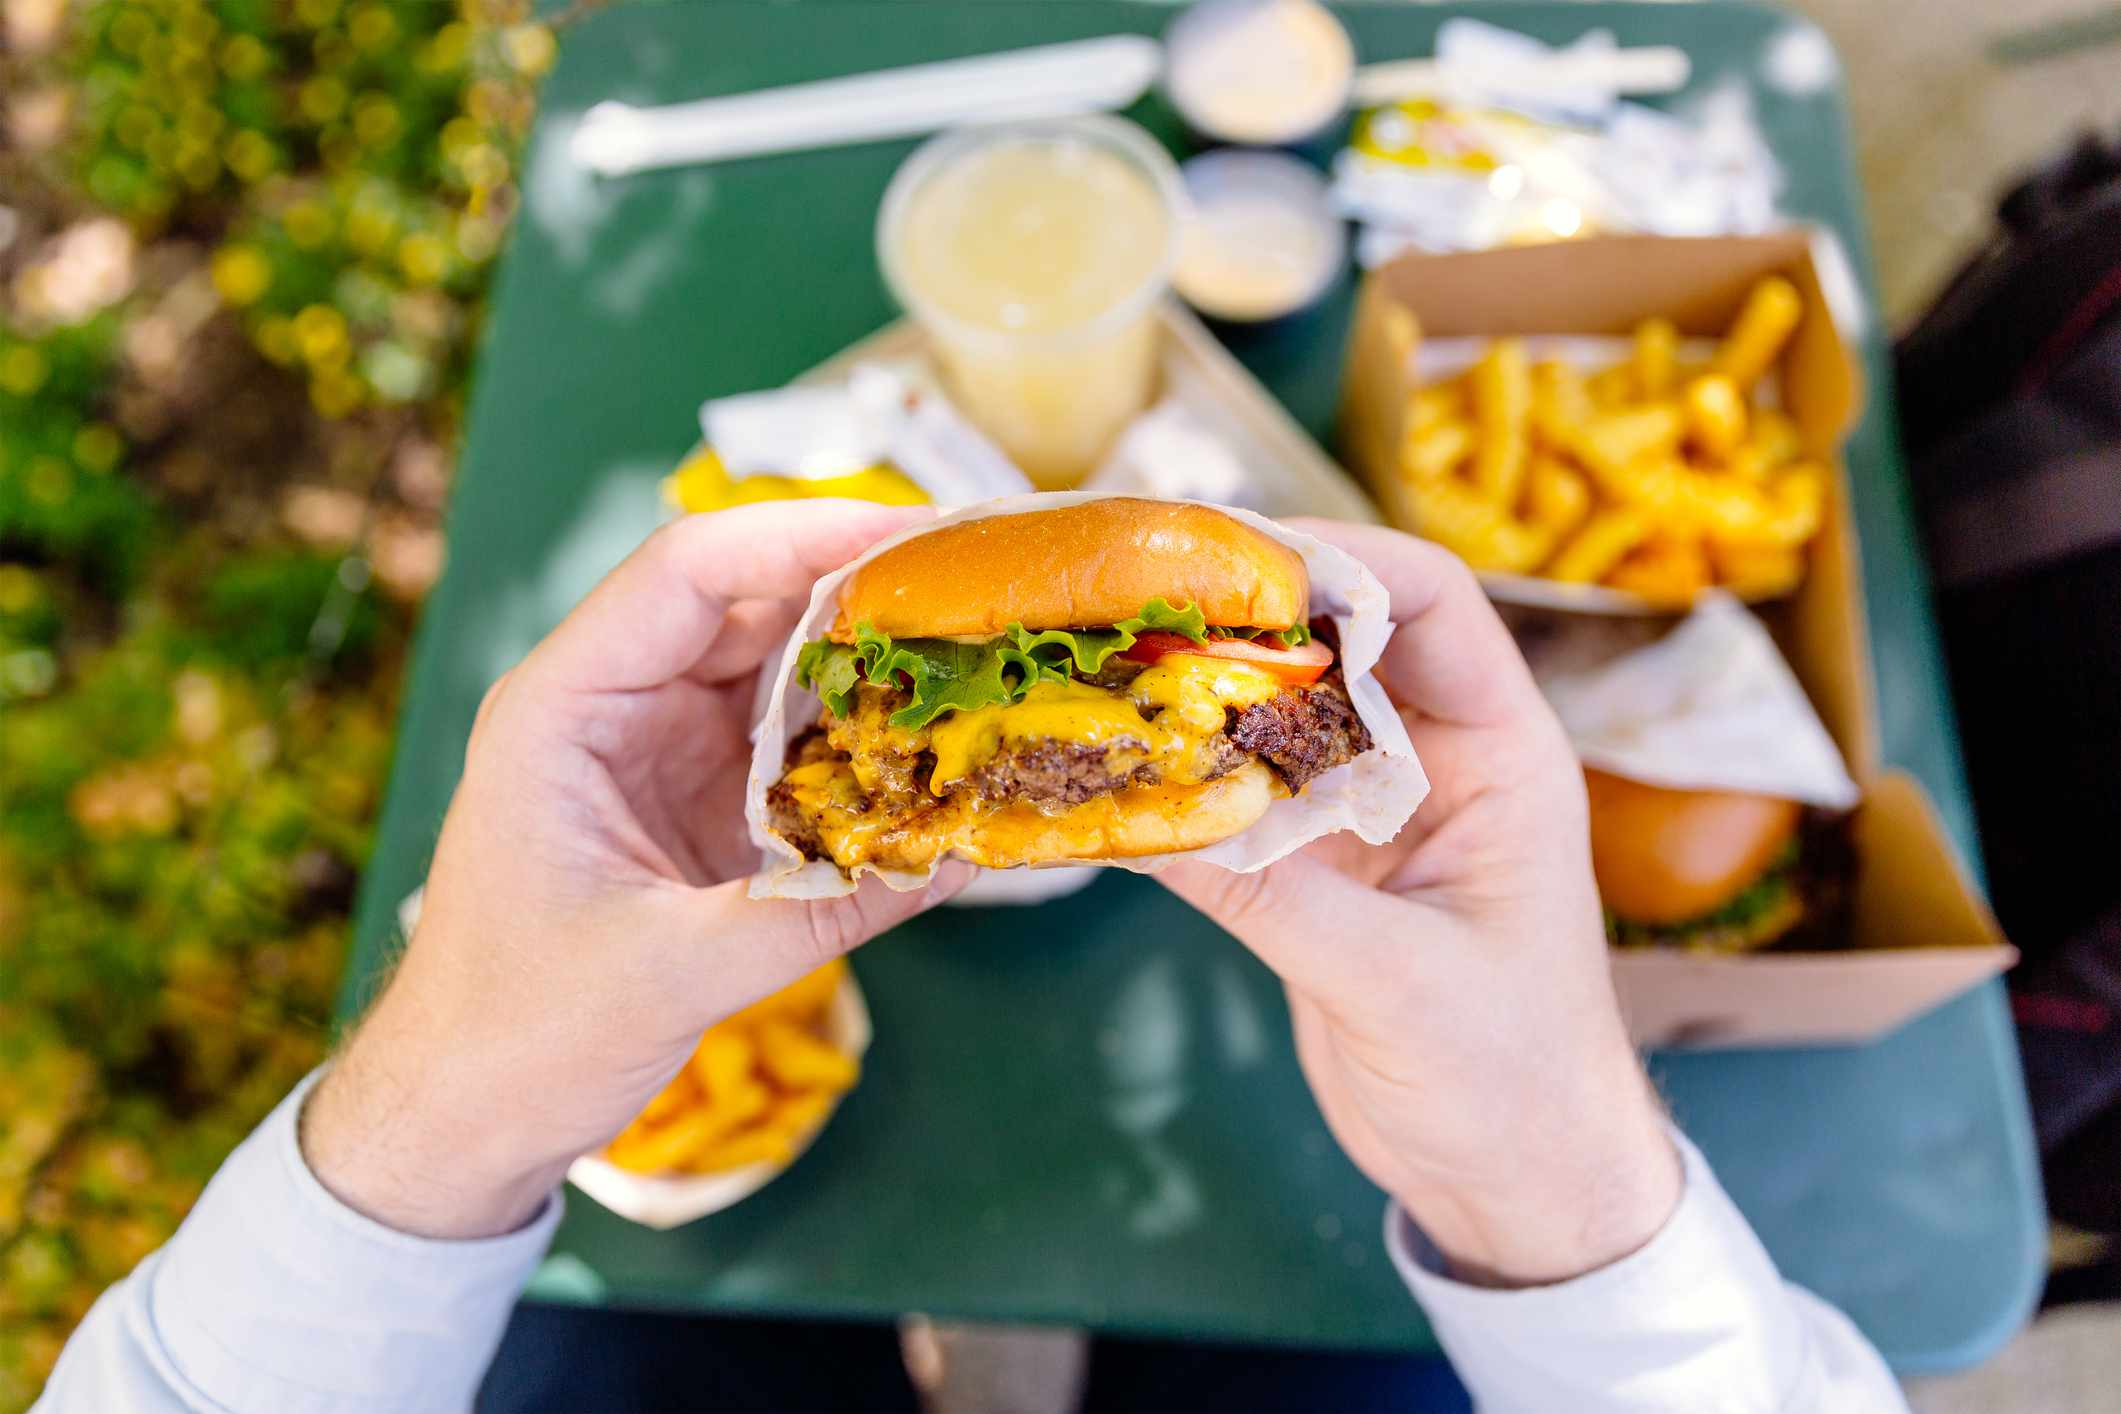 Man eating cheeseburger, personal perspective view with other fast food on the table